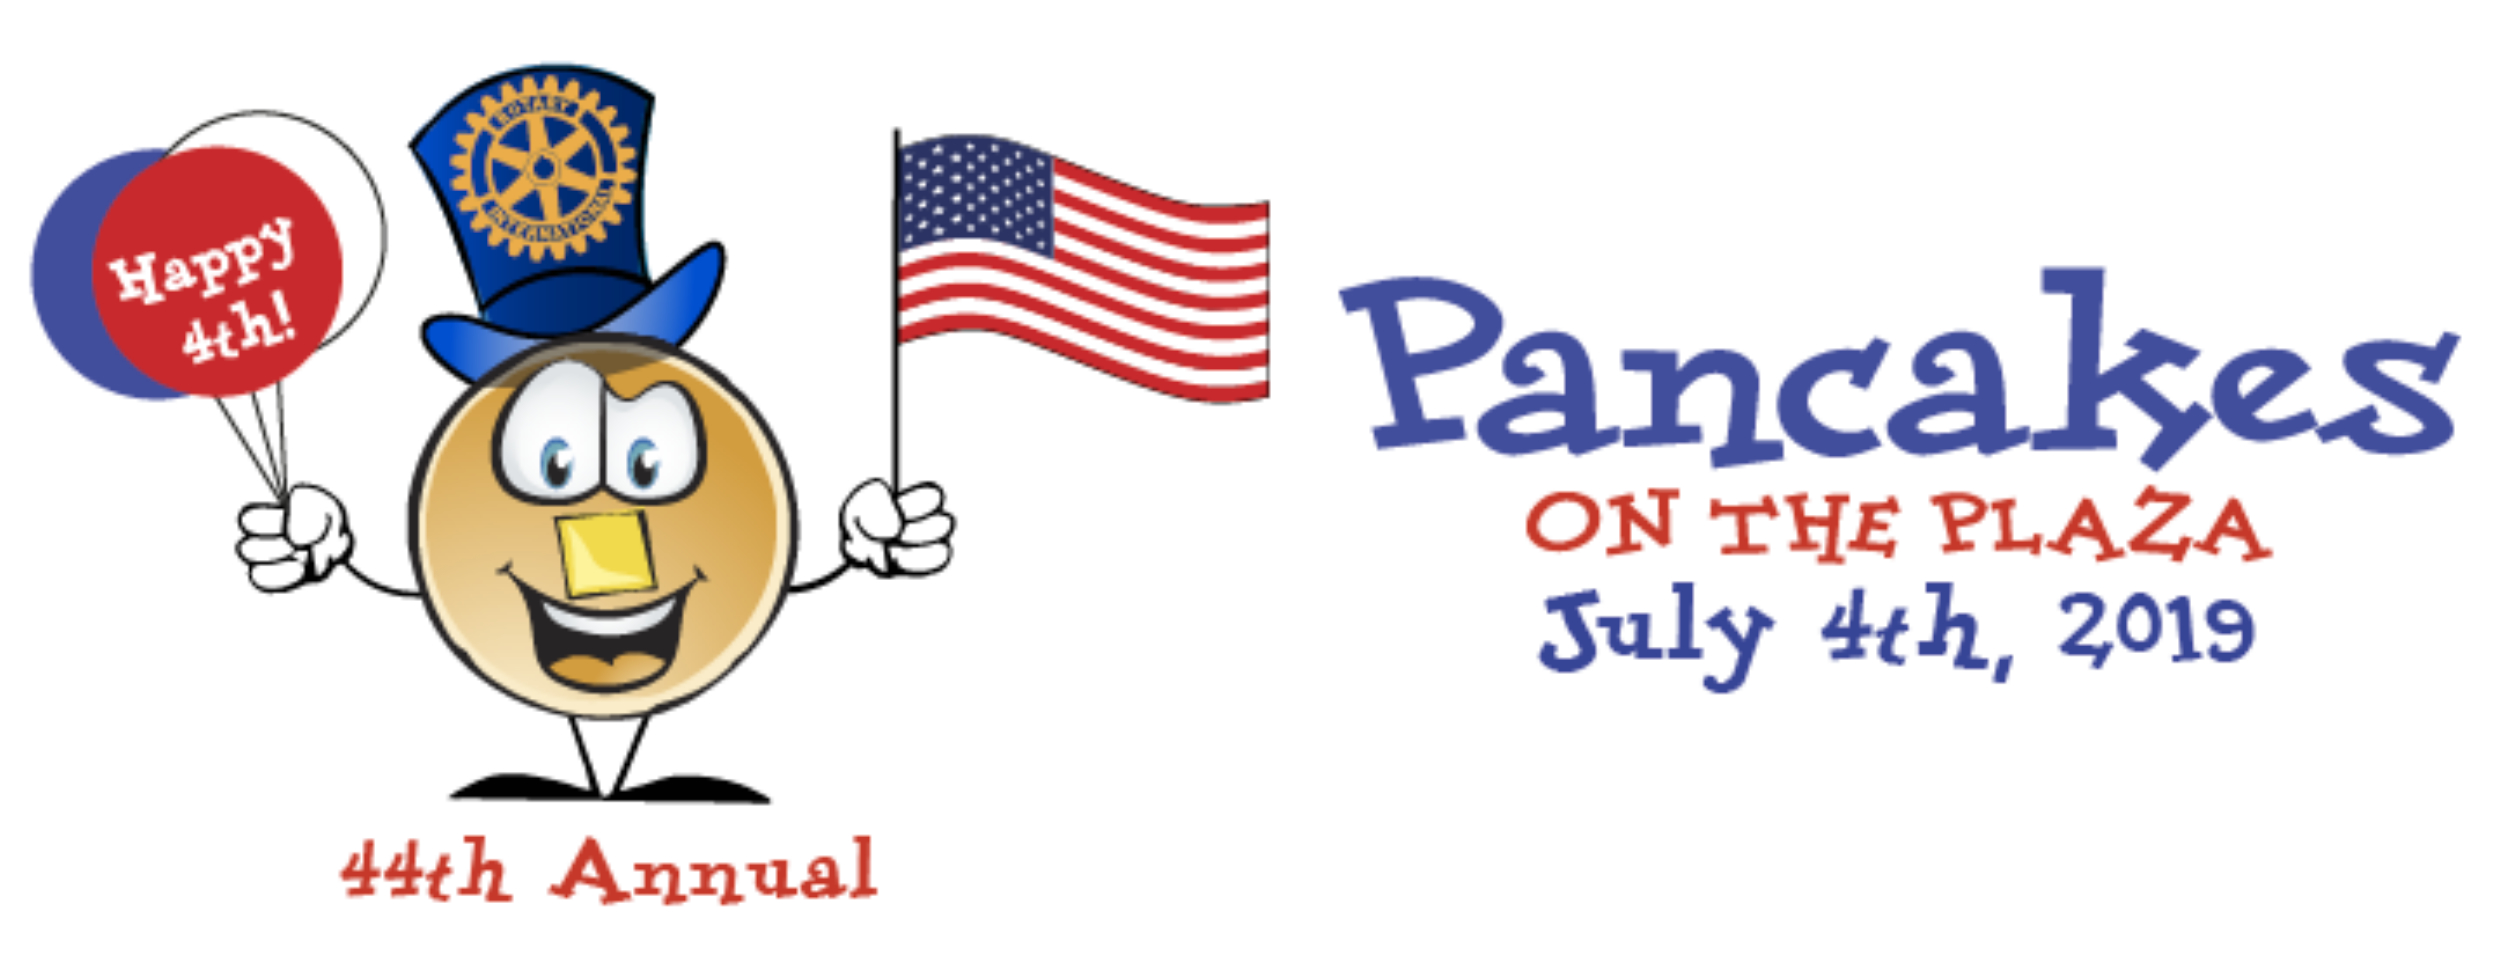 44th Annual Pancakes on the Plaza